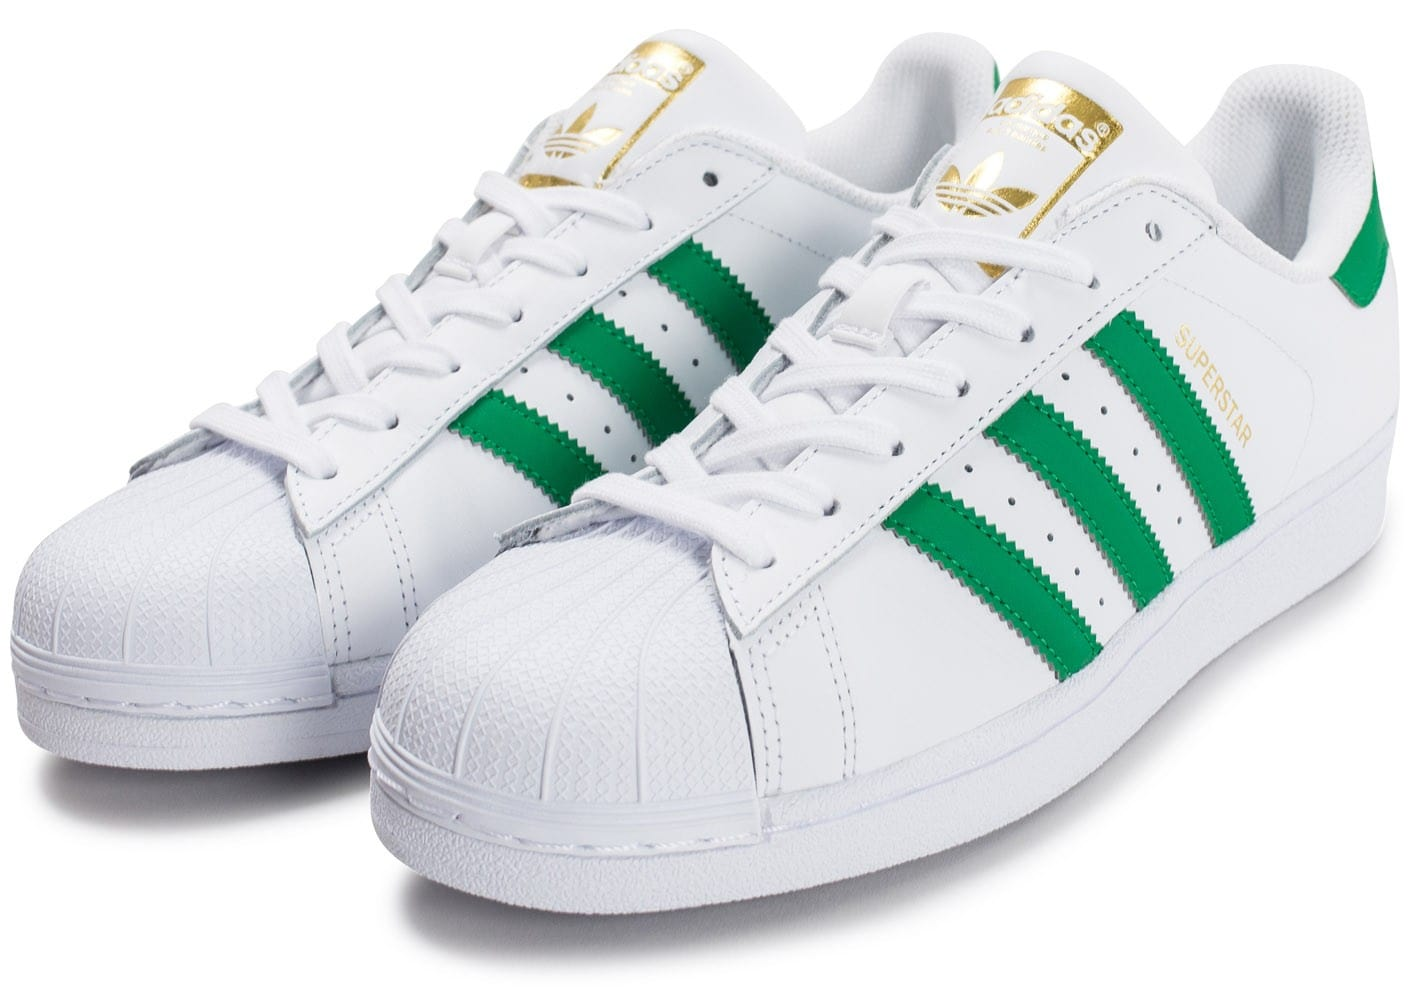 verte adidas superstar adidas chaussure chaussure superstar superstar chaussure foundation foundation verte adidas edxrQCBWEo